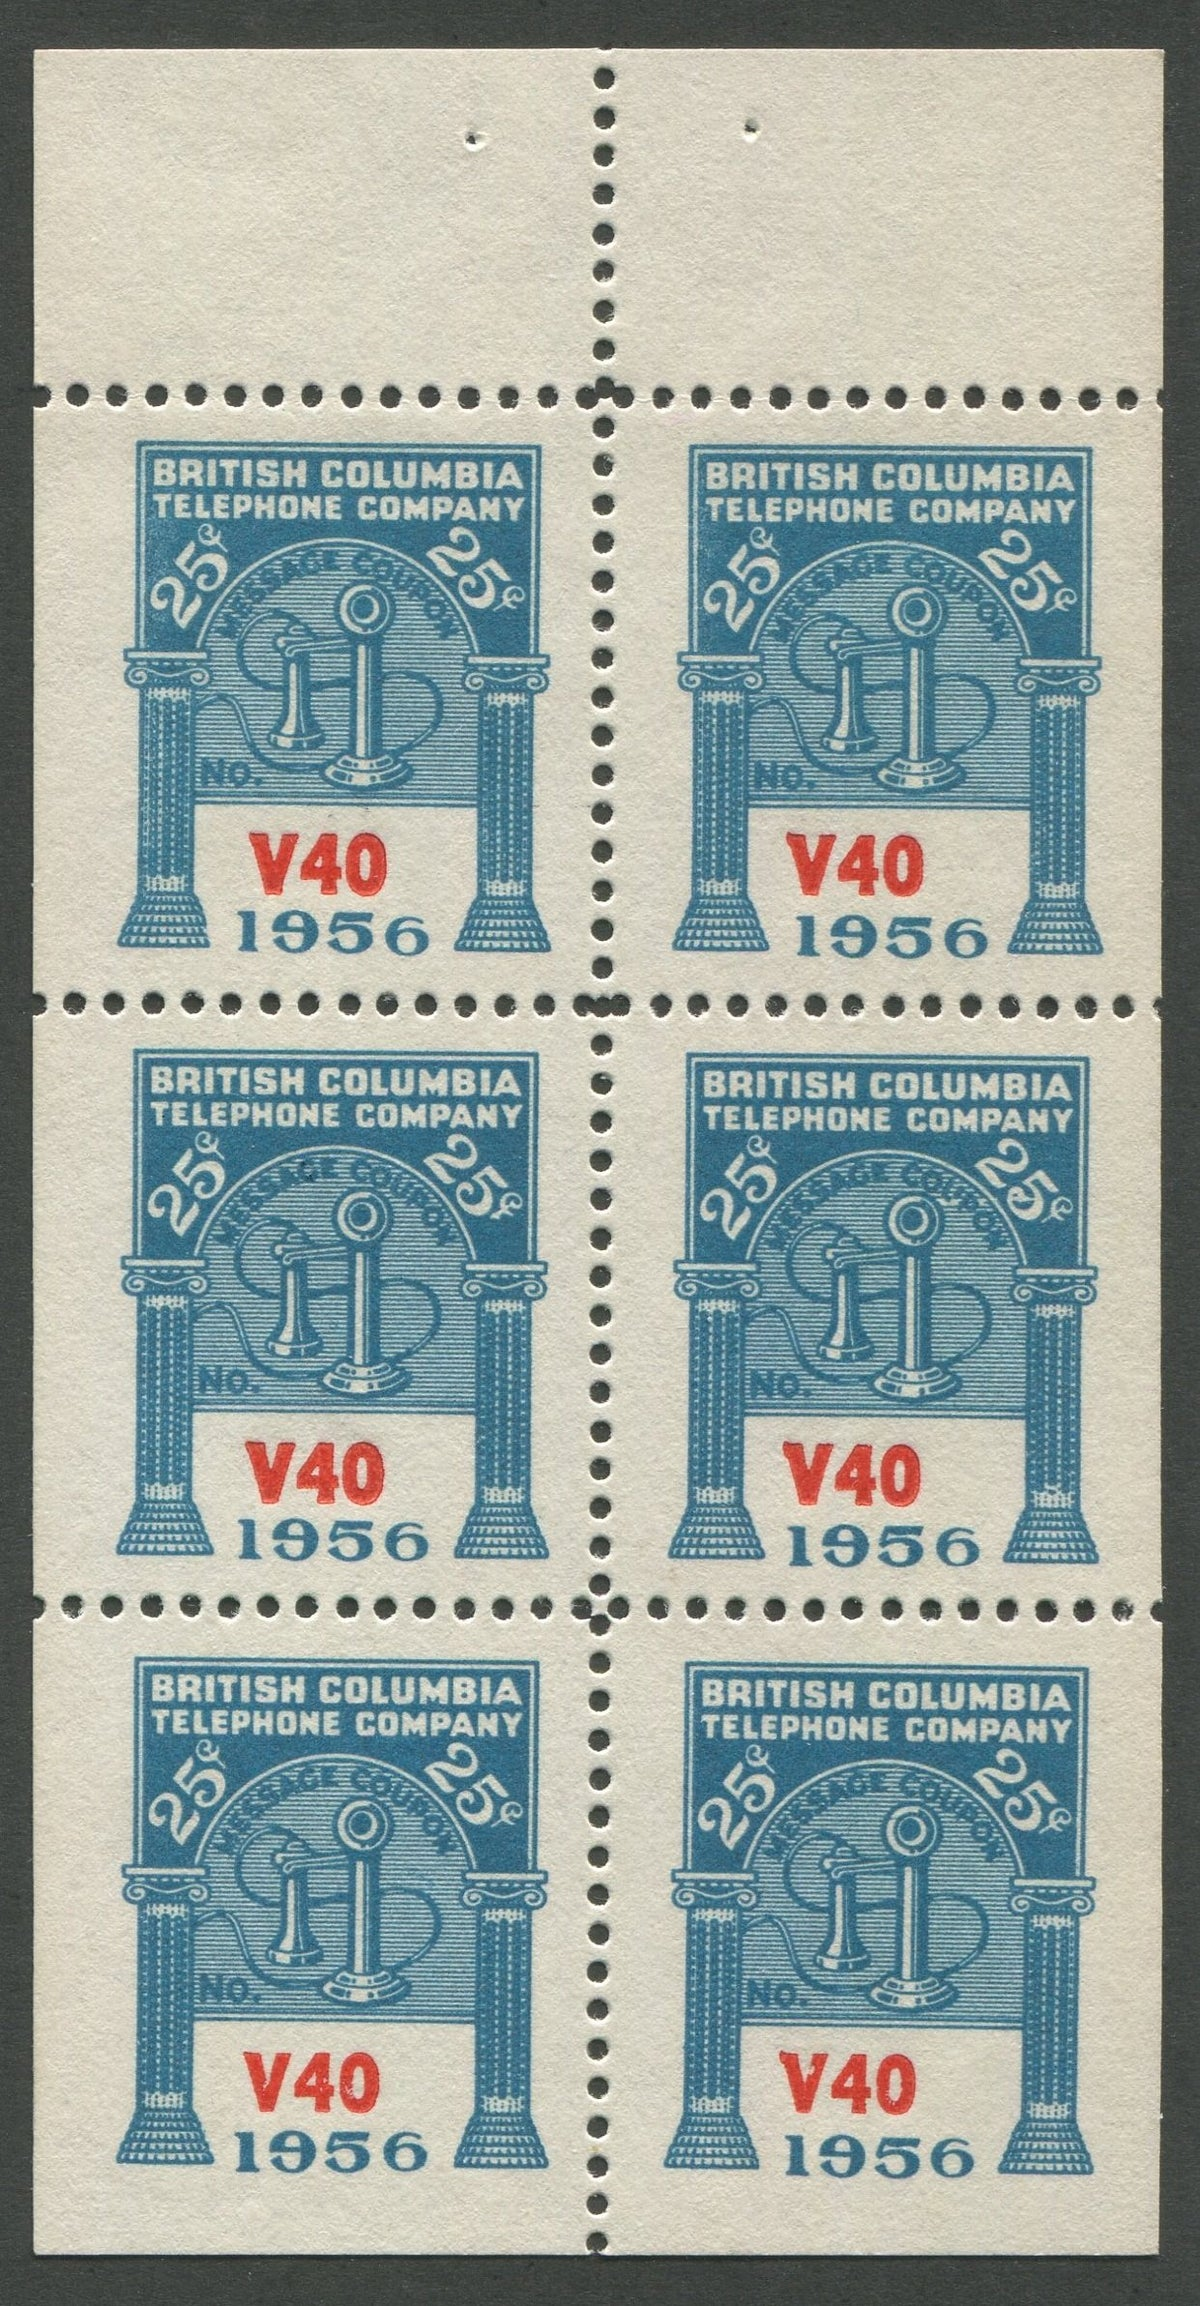 0277BC1708 - BCT179 - Mint Booklet Pane, Watermarked